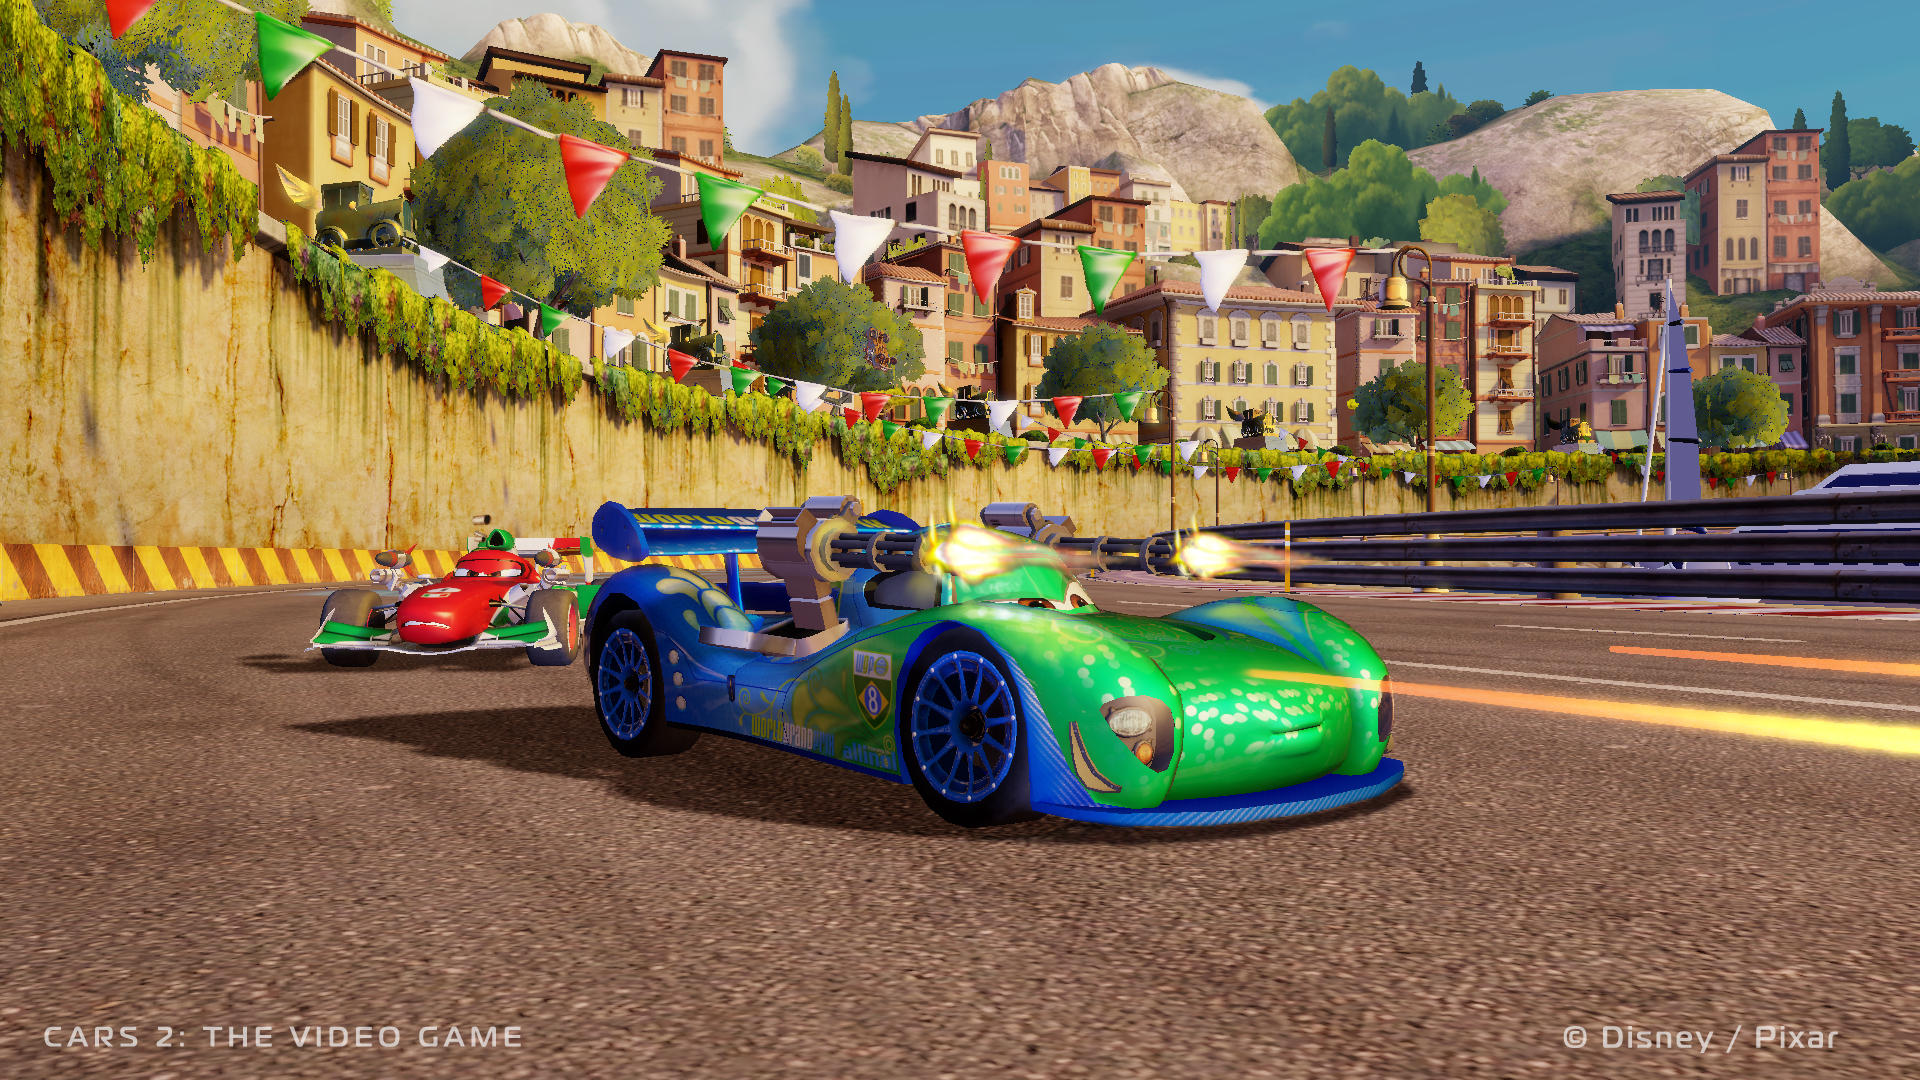 New Cars 2 Video Game Trailer – The Elite